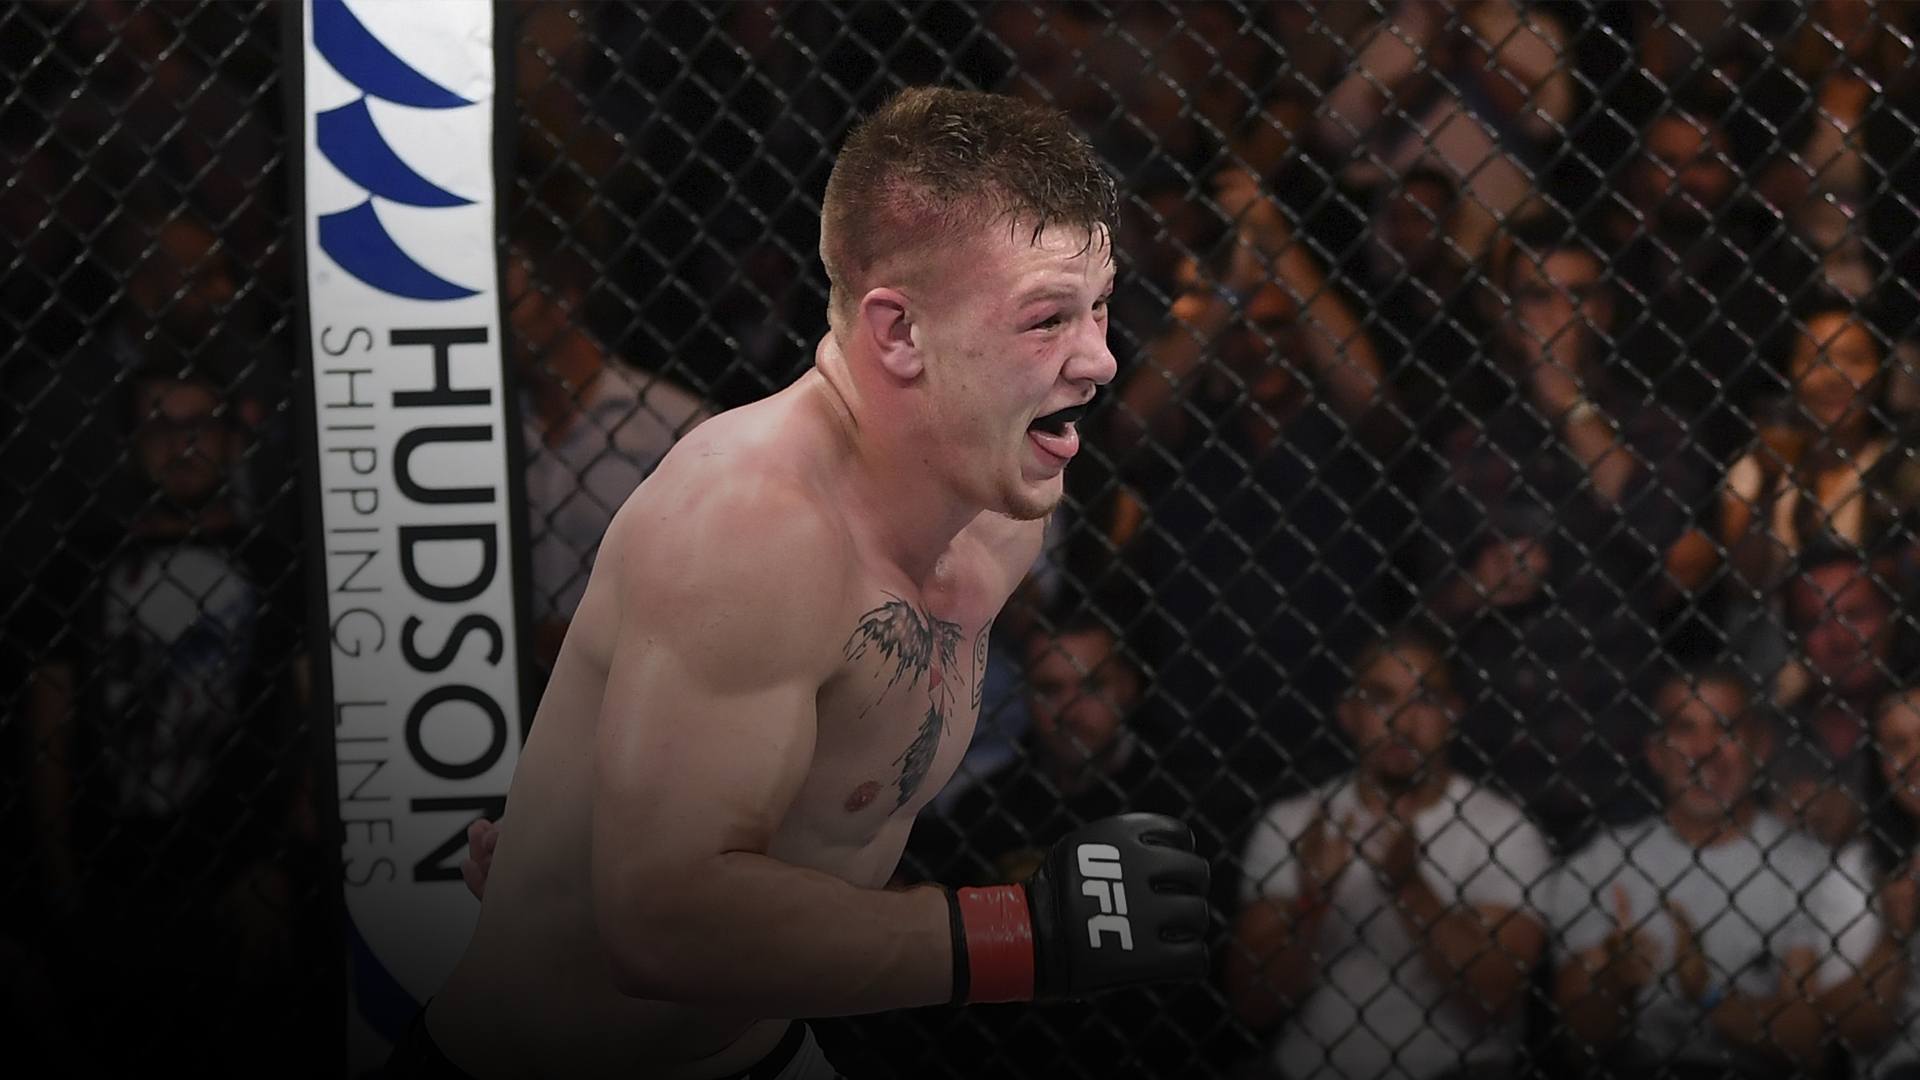 Jimmy Crute of Australia celebrates after his submission victory over Paul Craig of Scotland in their light heavyweight bout during the UFC Fight Night event inside Adelaide Entertainment Centre on December 2, 2018 in Adelaide, Australia. (Photo by J.jpg